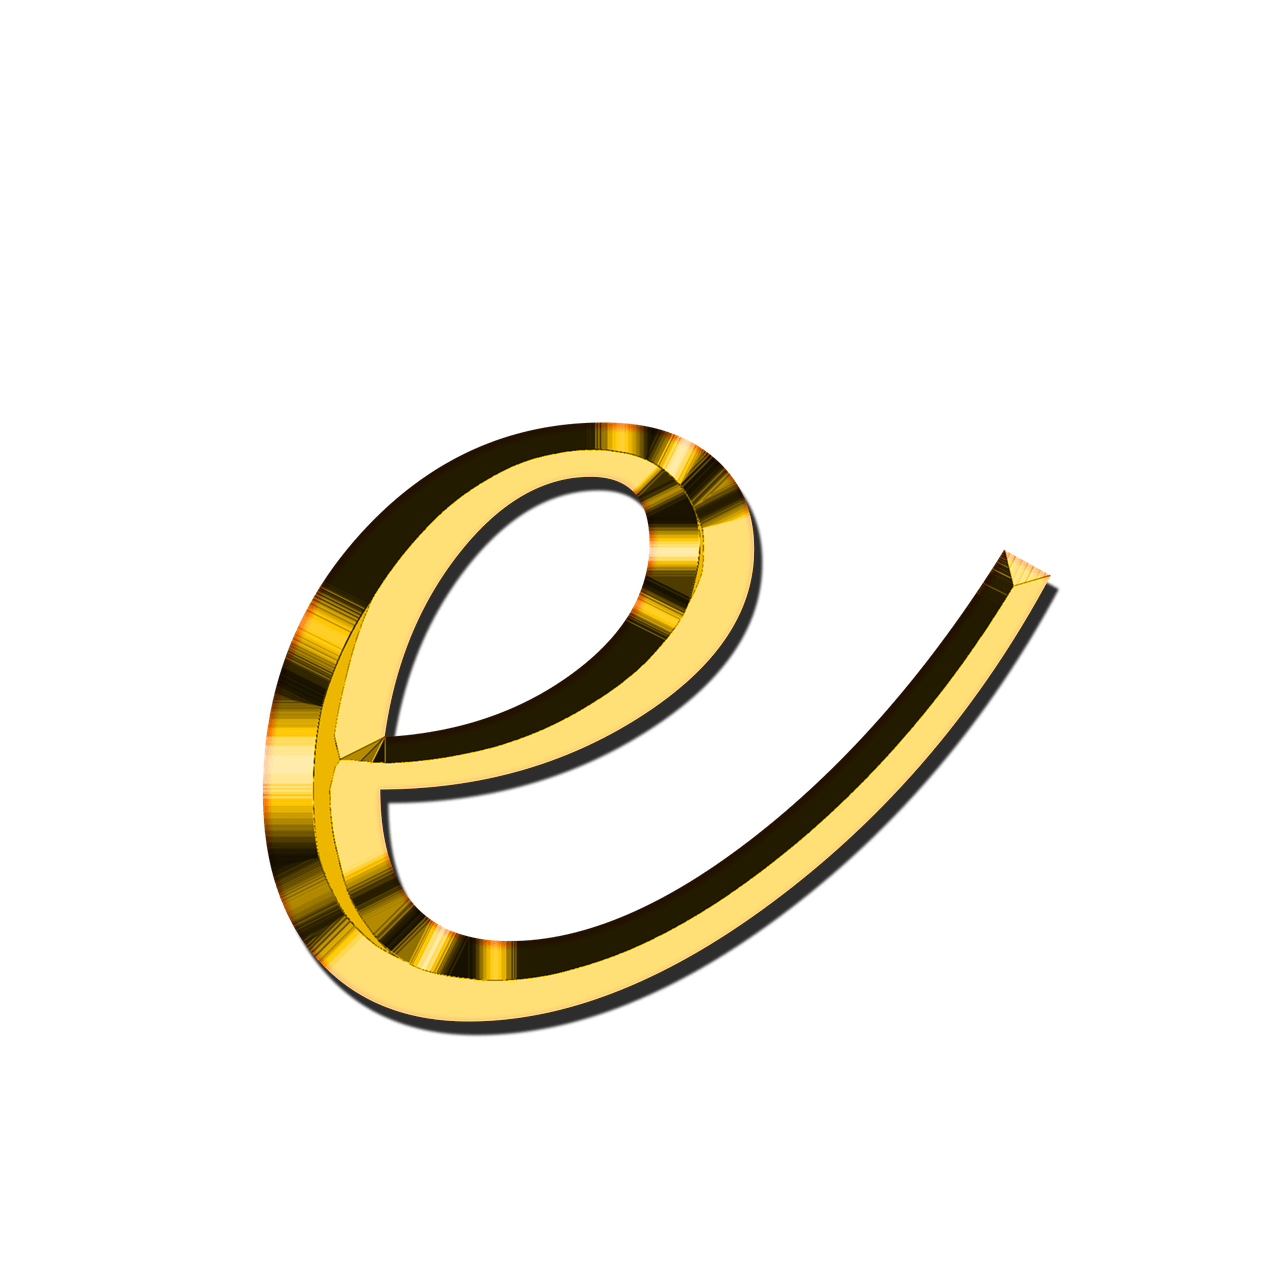 E transparent small. Letter png stickpng download